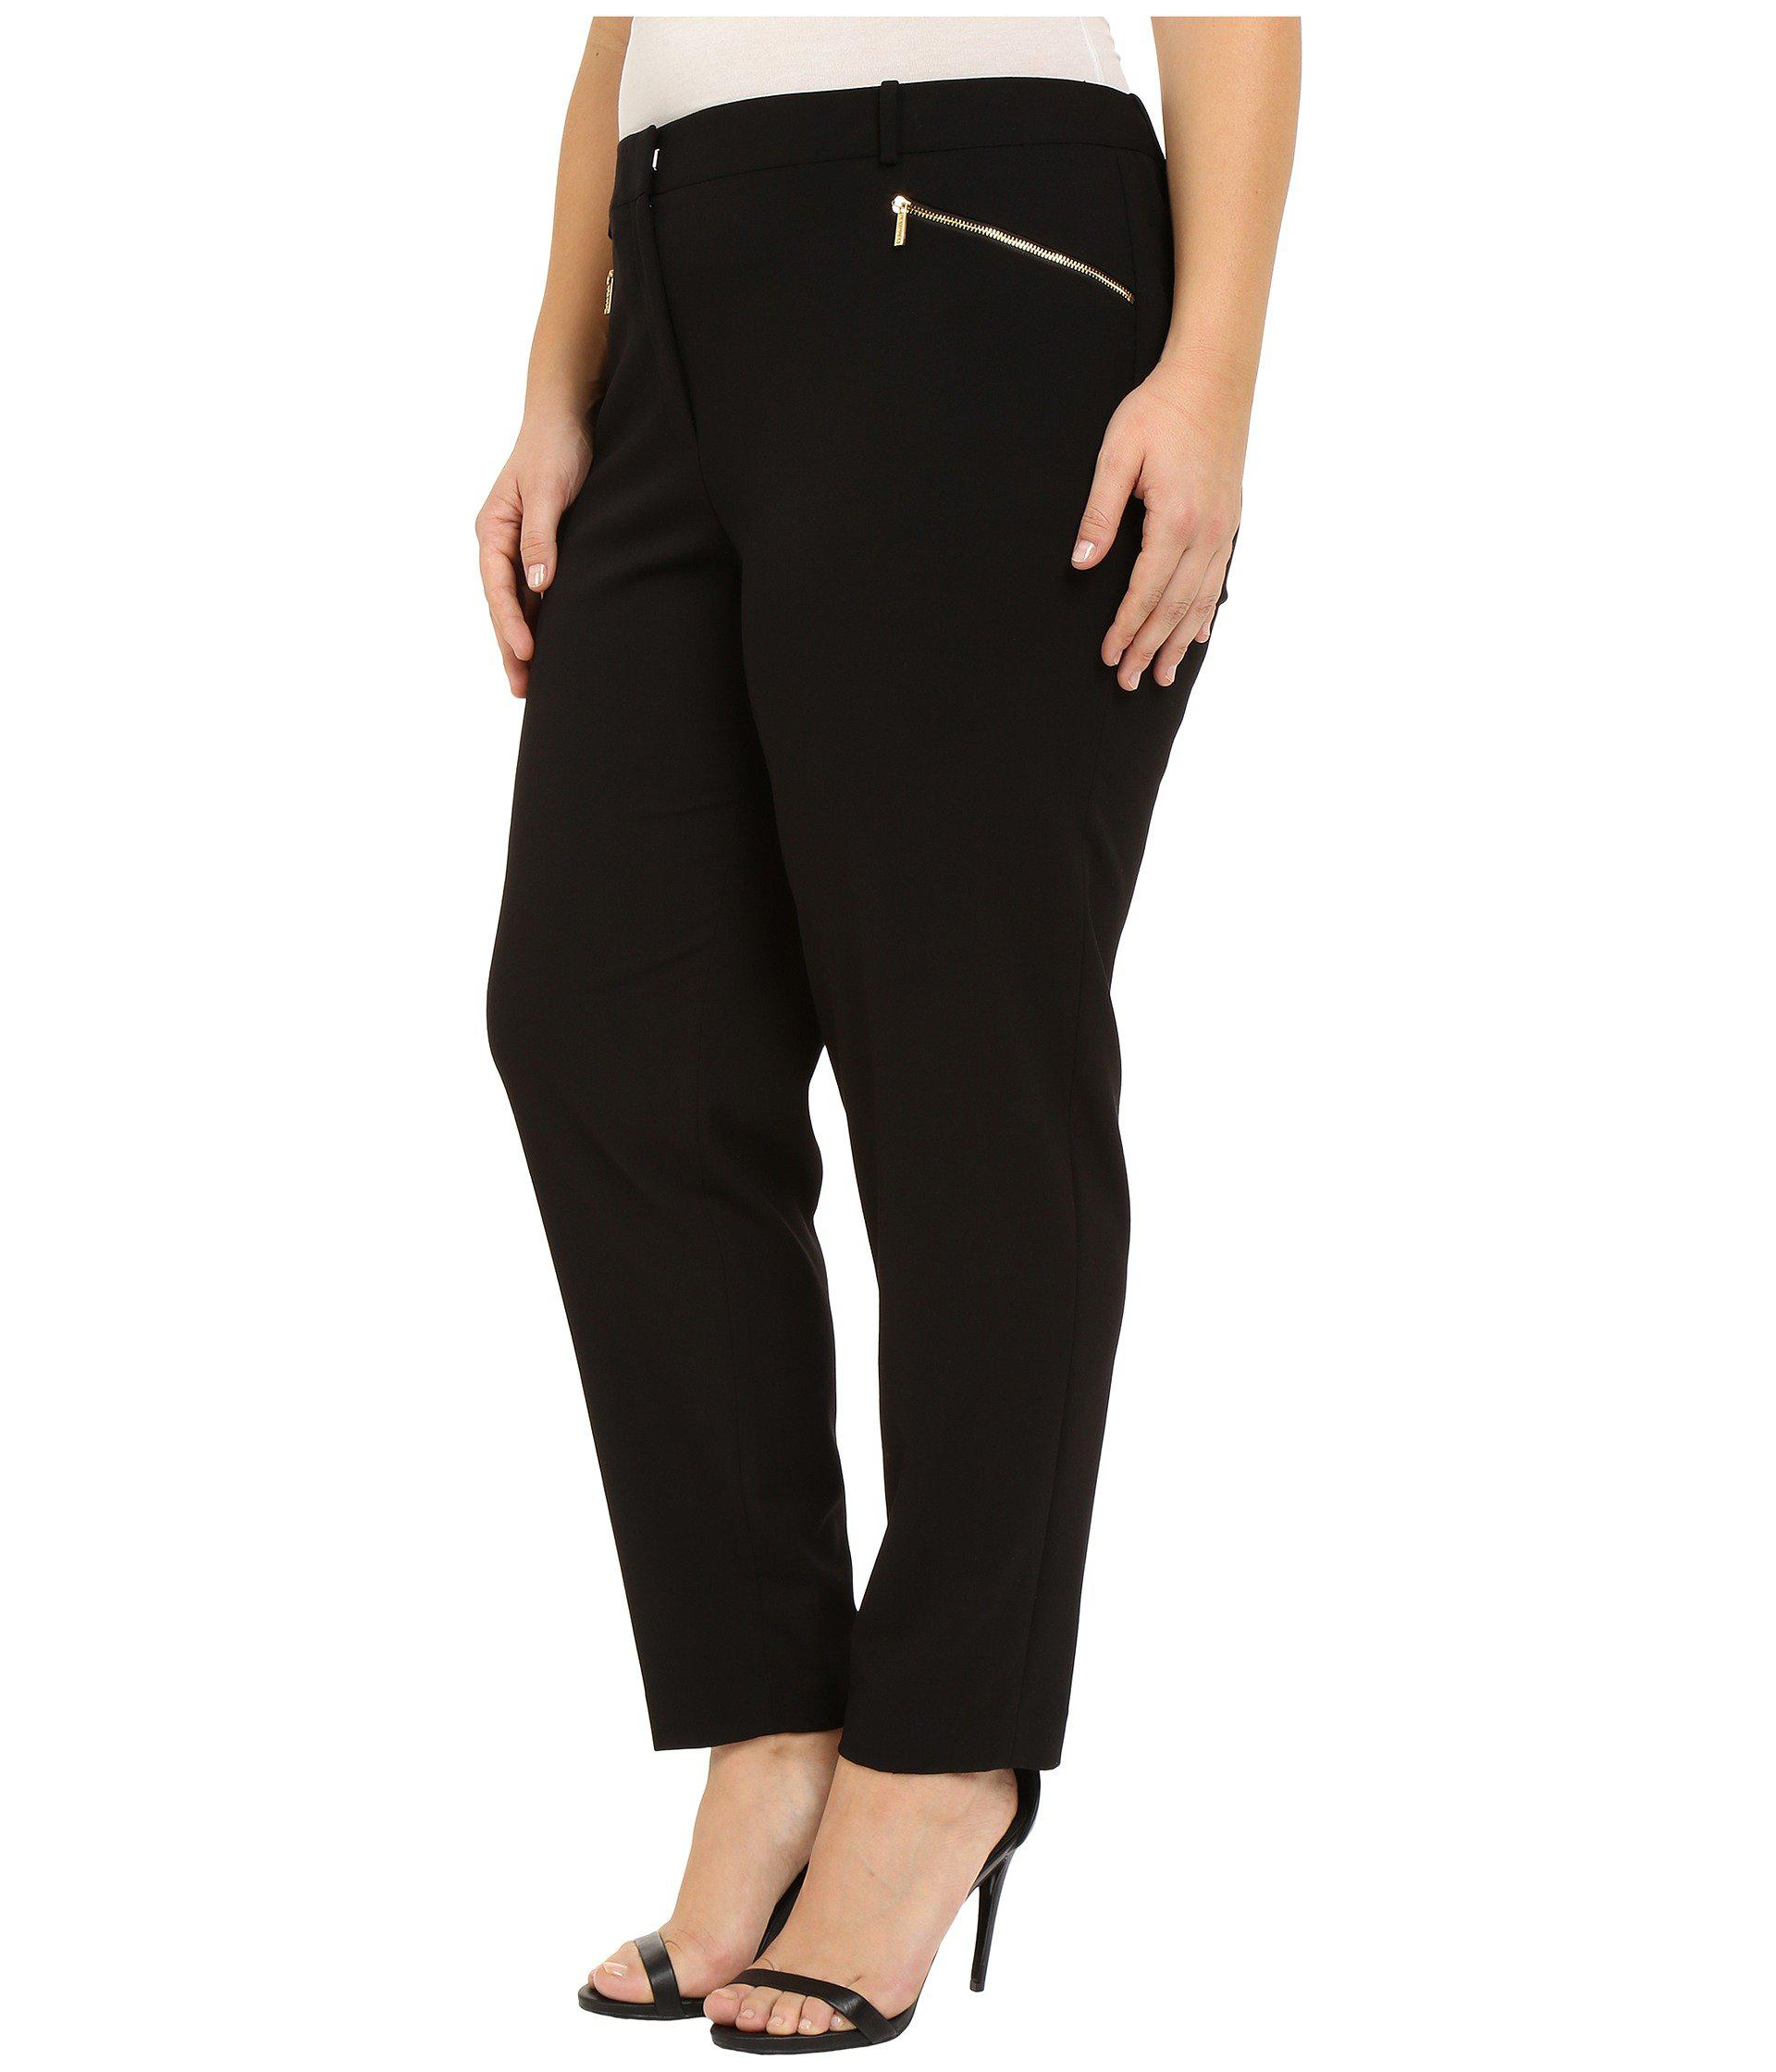 274db51f4e2 Lyst - Calvin Klein Plus Size Skinny Pants With Zippers (black) Women s  Casual Pants in Black